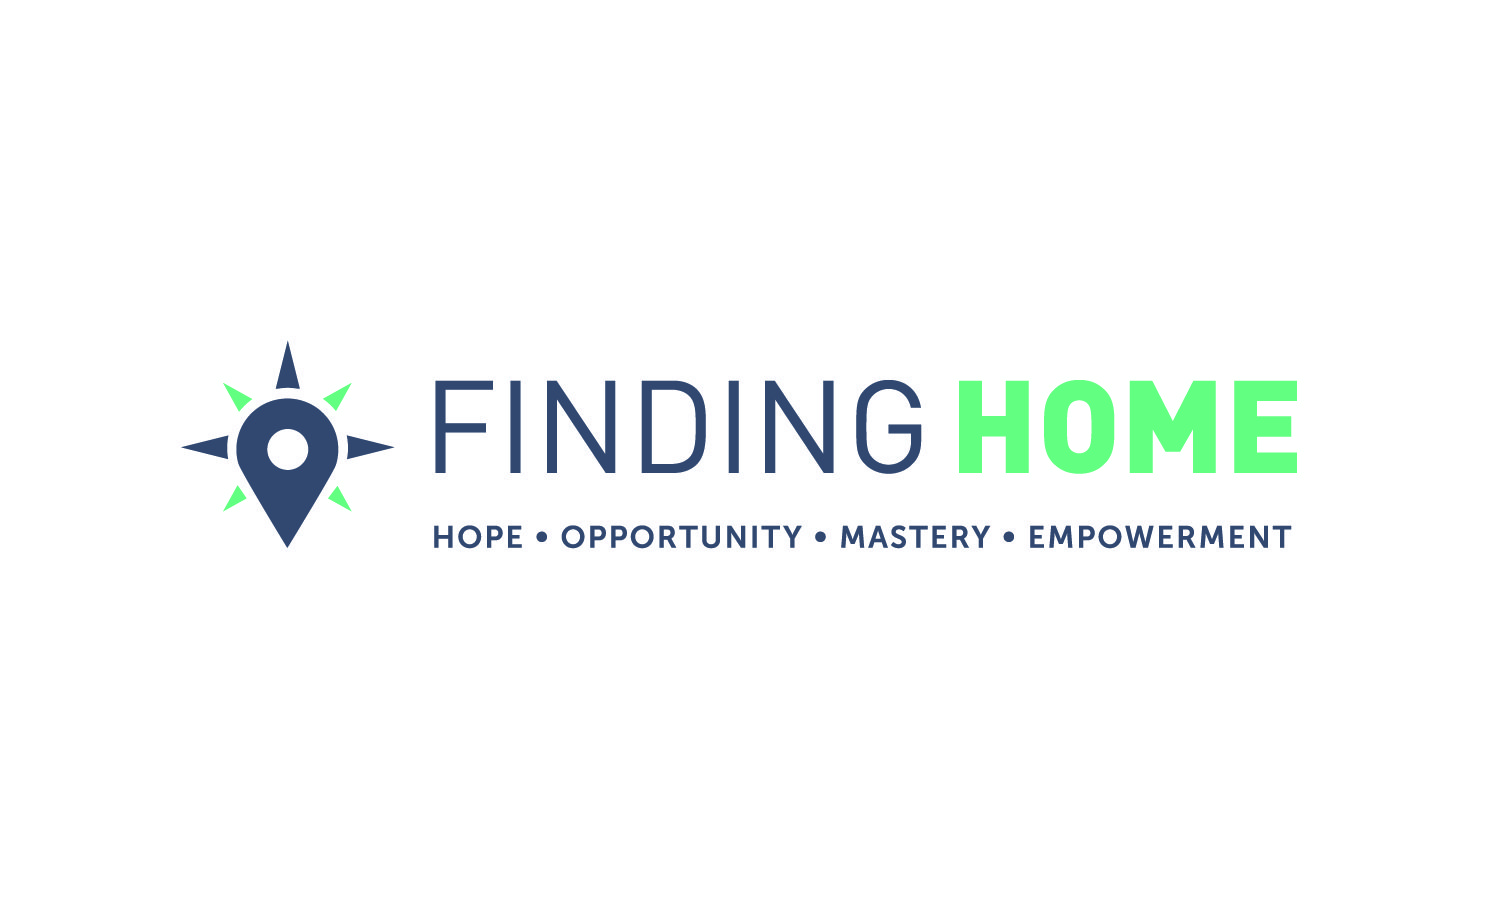 Finding HOME Financial Literacy Program